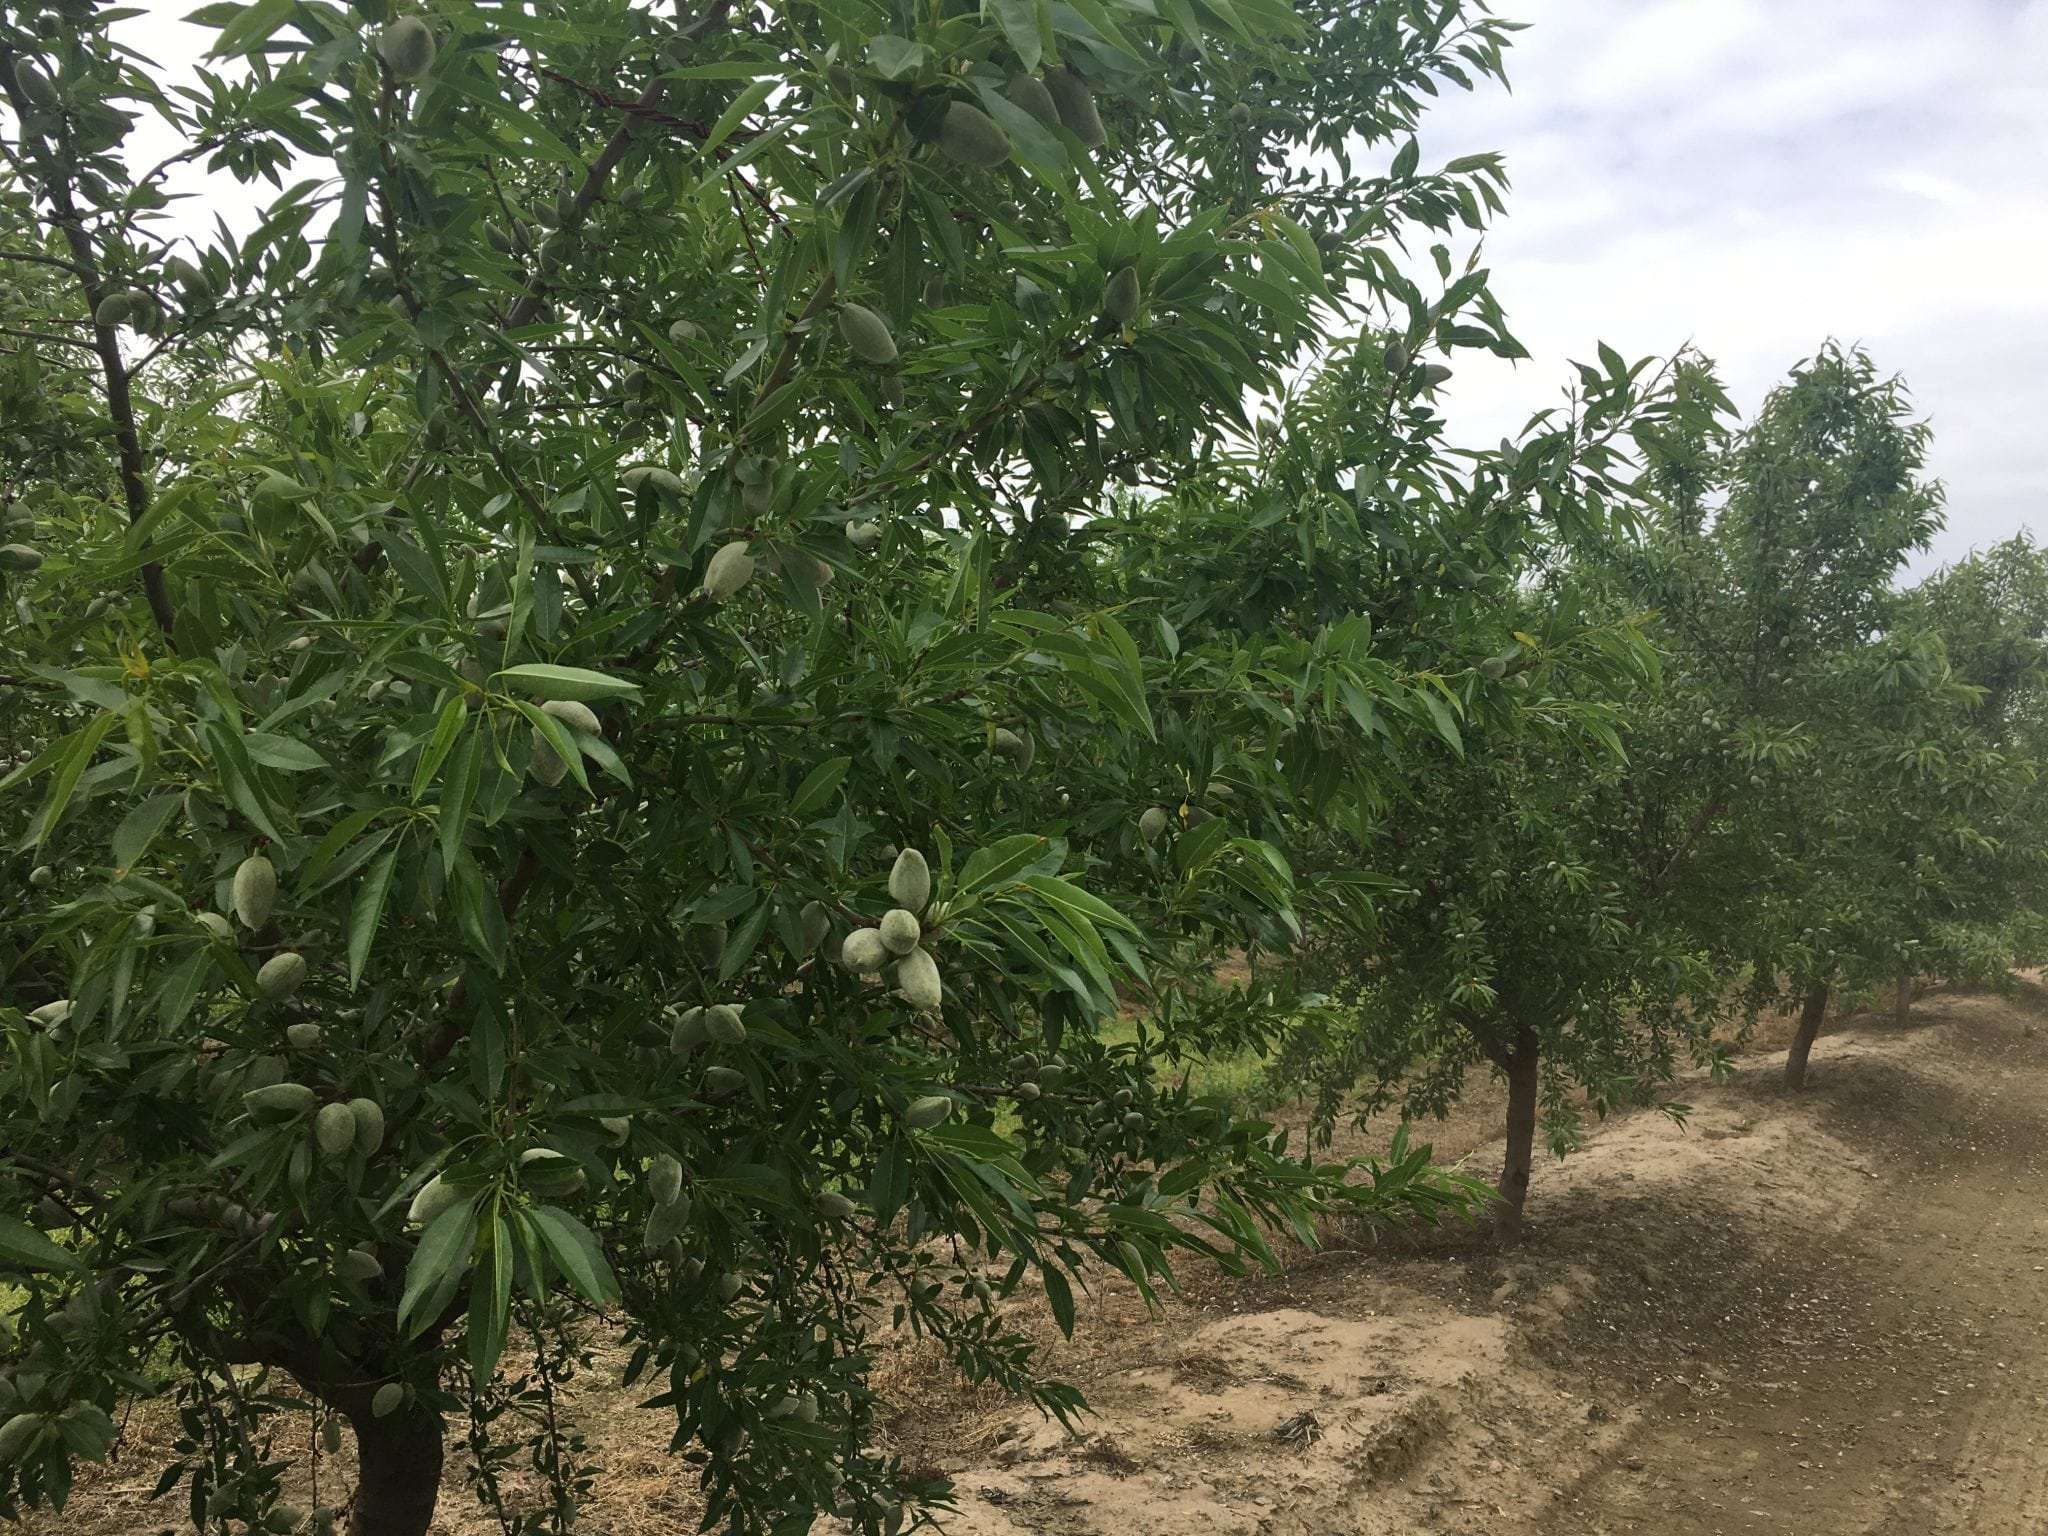 19 Acres Almonds, Island District, Kingsburg